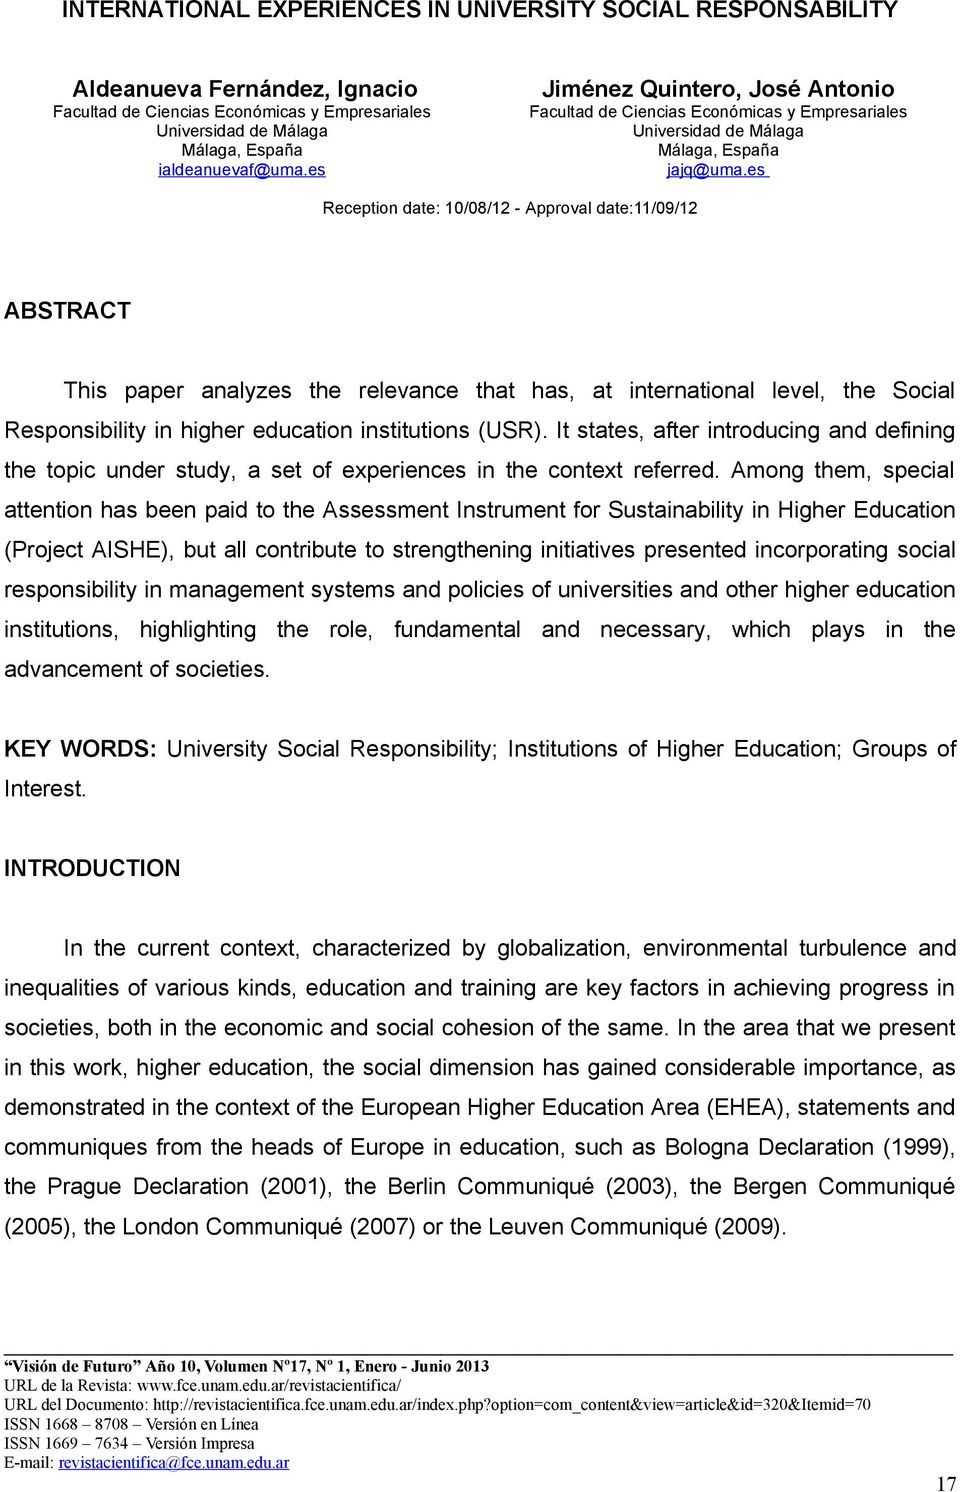 es Reception date: 10/08/12 - Approval date:11/09/12 ABSTRACT This paper analyzes the relevance that has, at international level, the Social Responsibility in higher education institutions (USR).